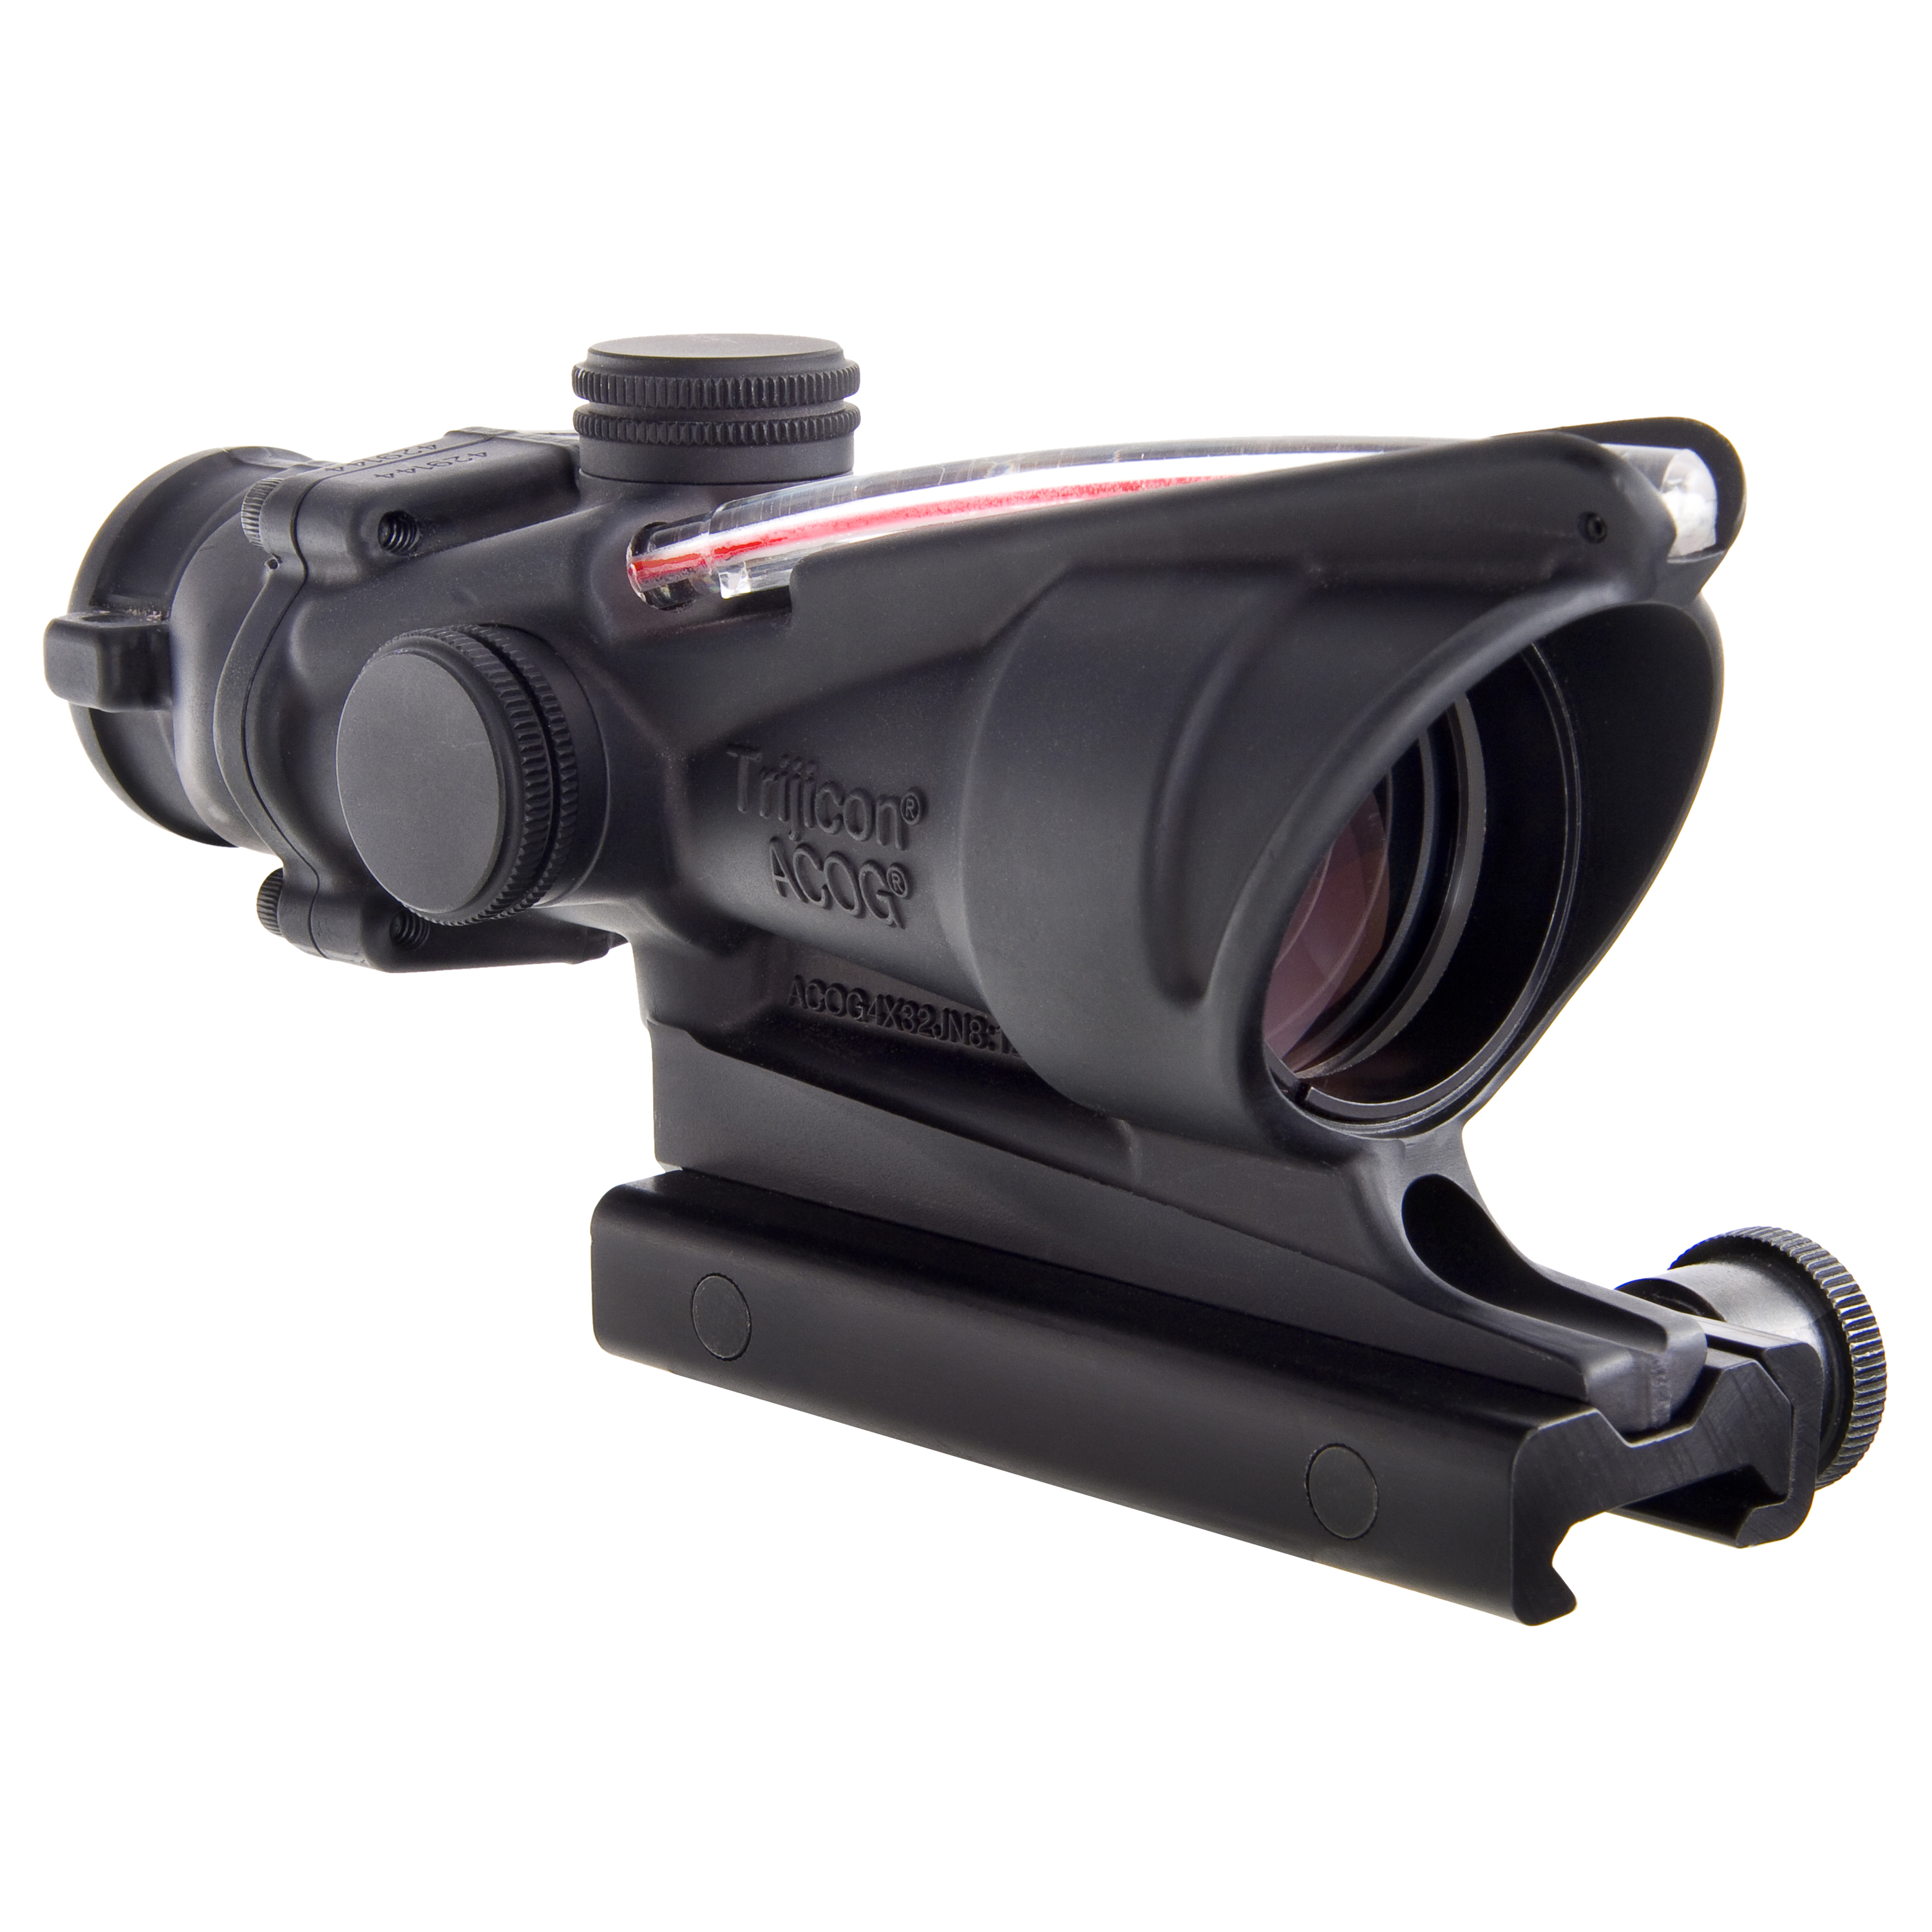 Click here to buy Trijicon ACOG 4x32mm Dual Illuminated Scope Red Chevron M193 Reticle with TA51 Mount, Black by Trijicon.